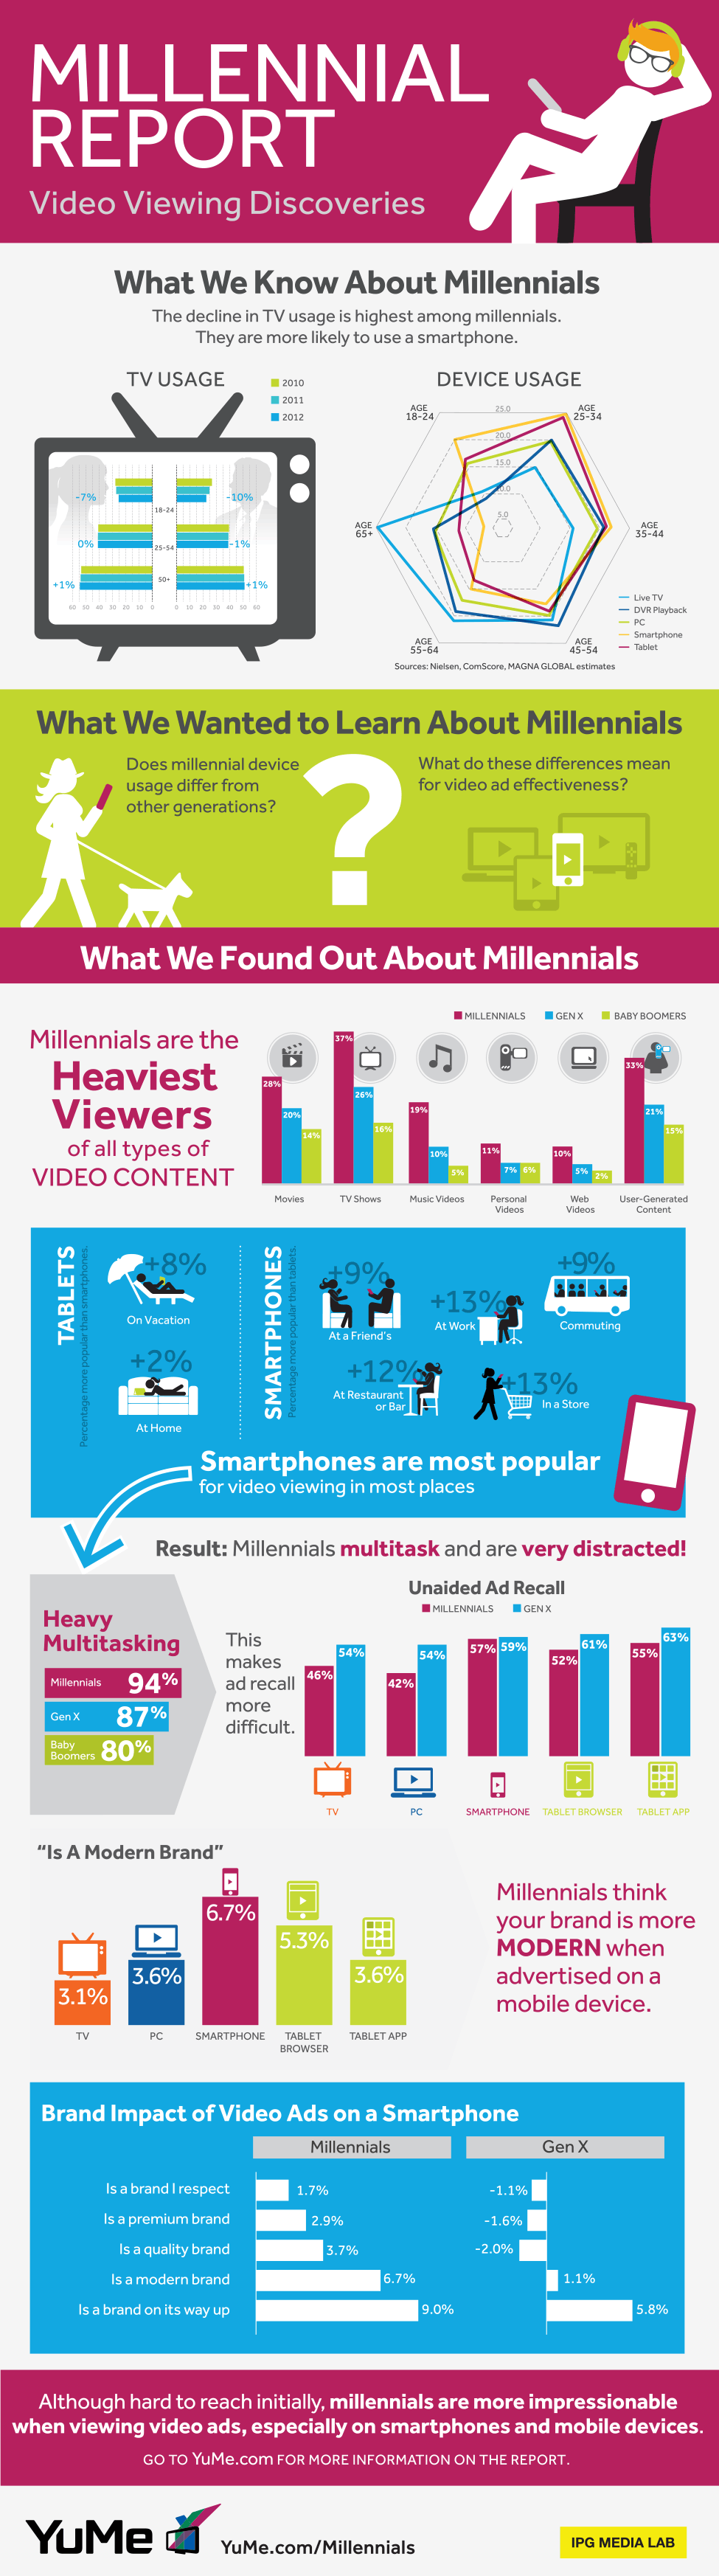 INFOGRAPHIC: Millennials Watch Way More Video Than Anyone